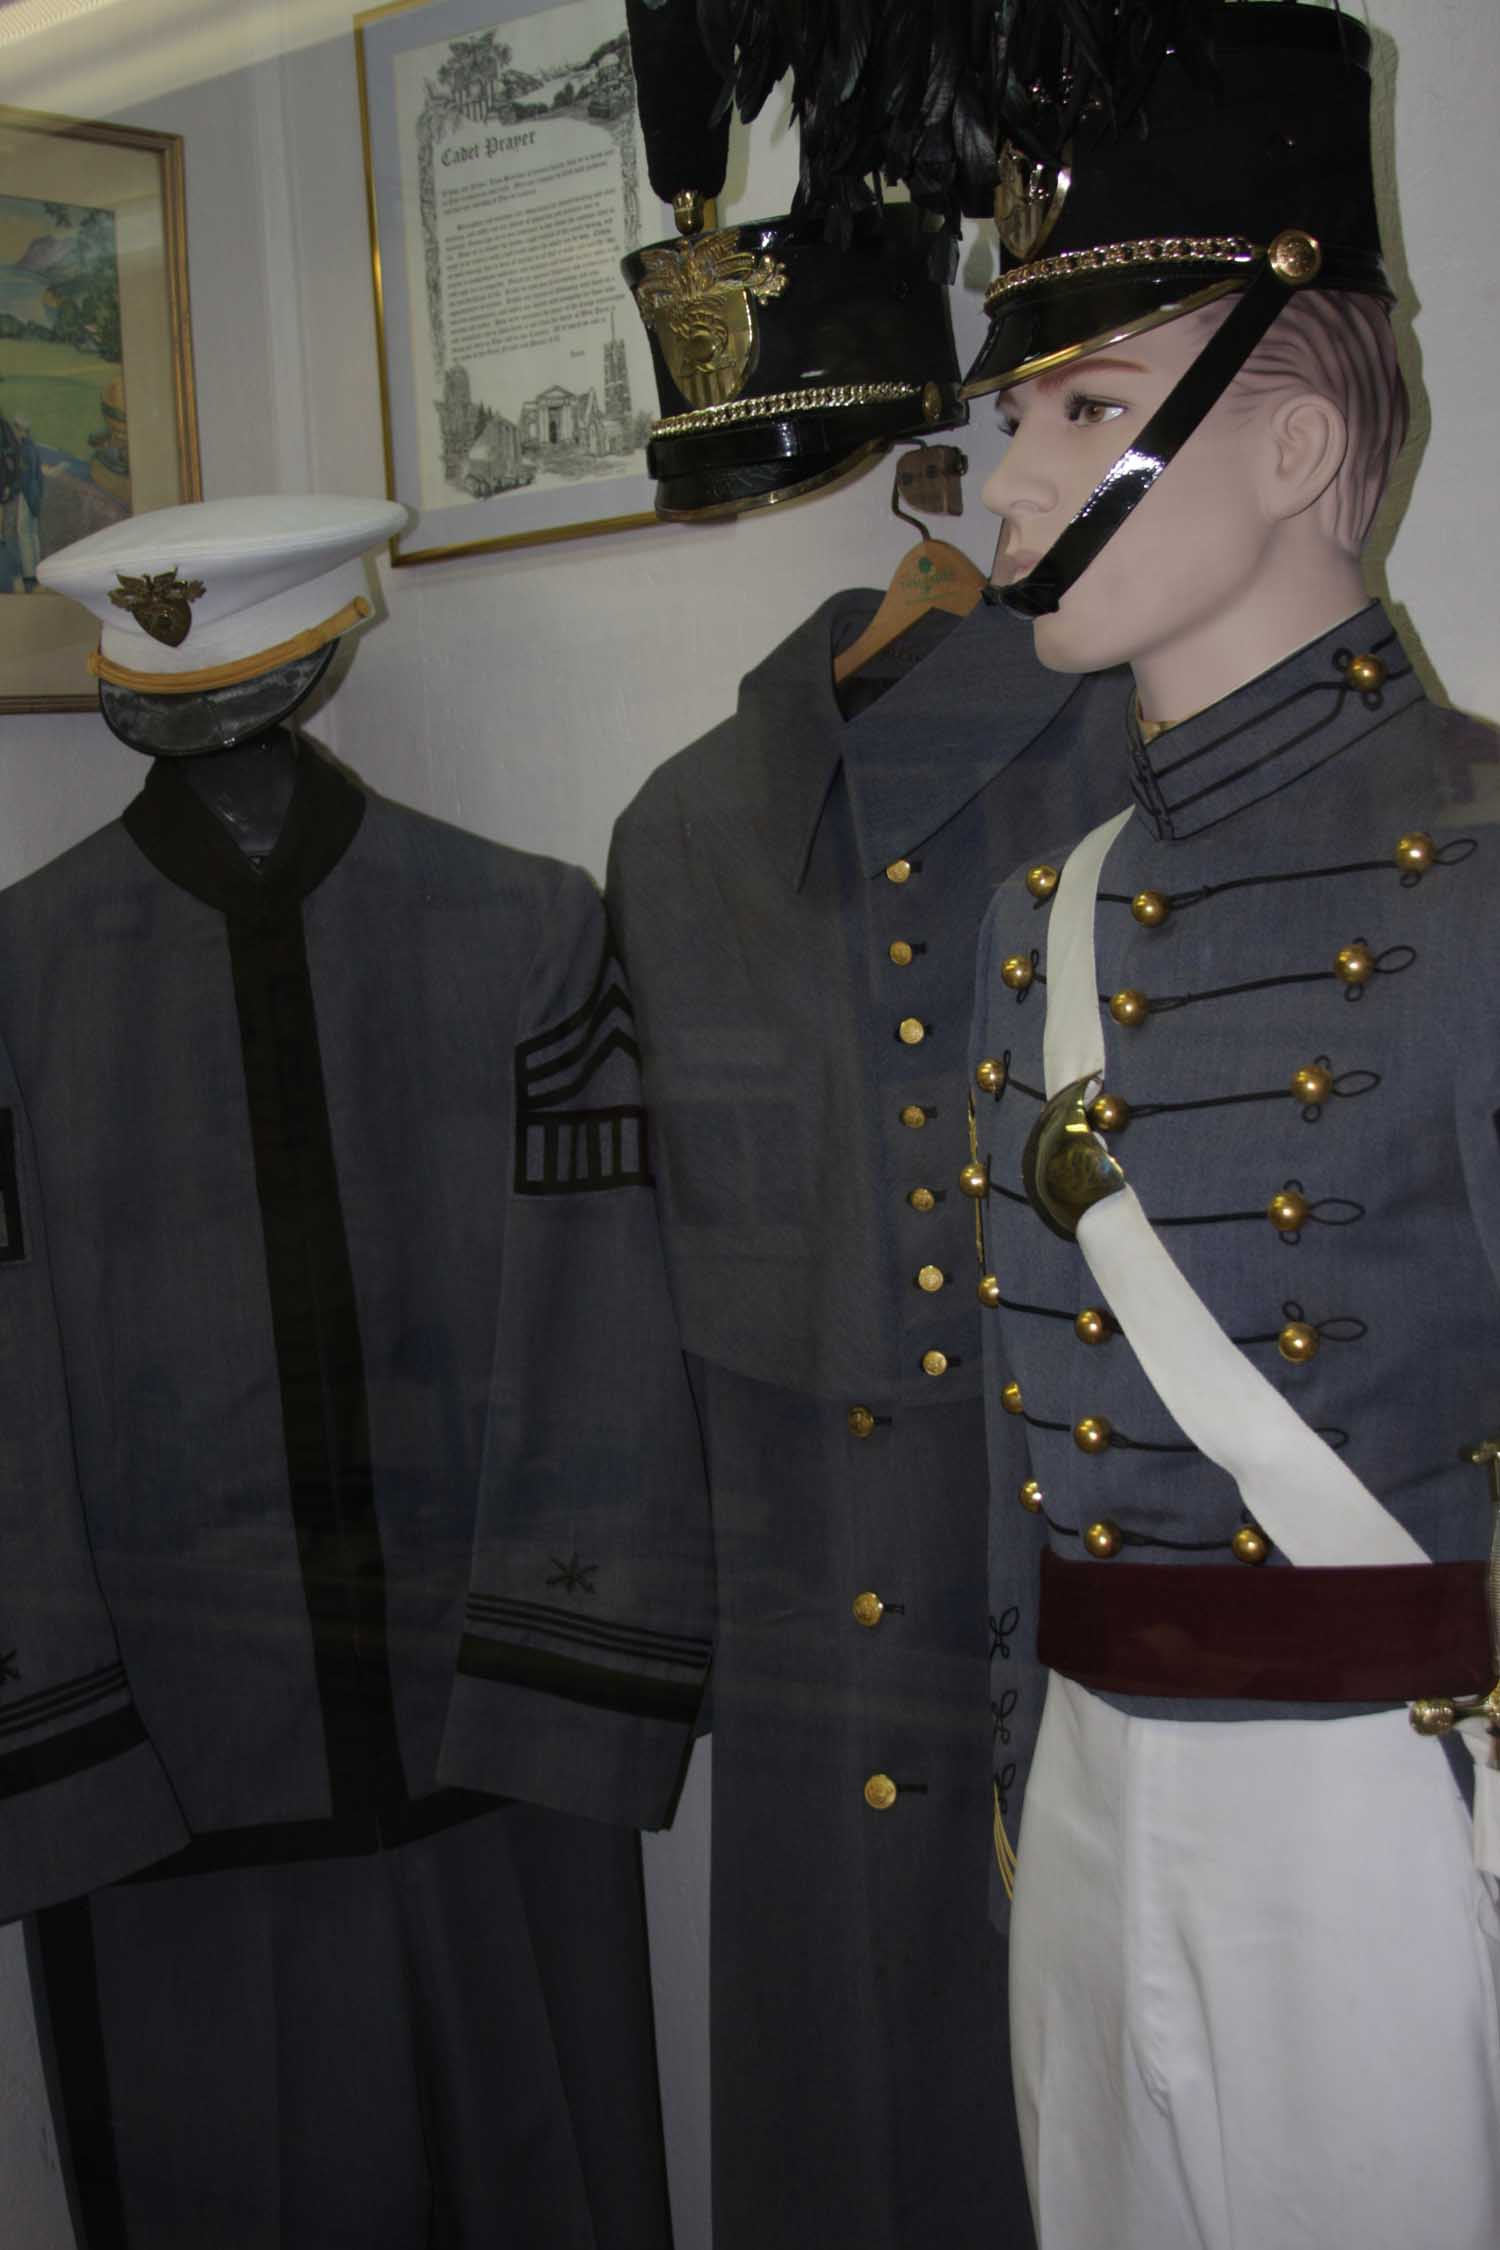 West Point Display